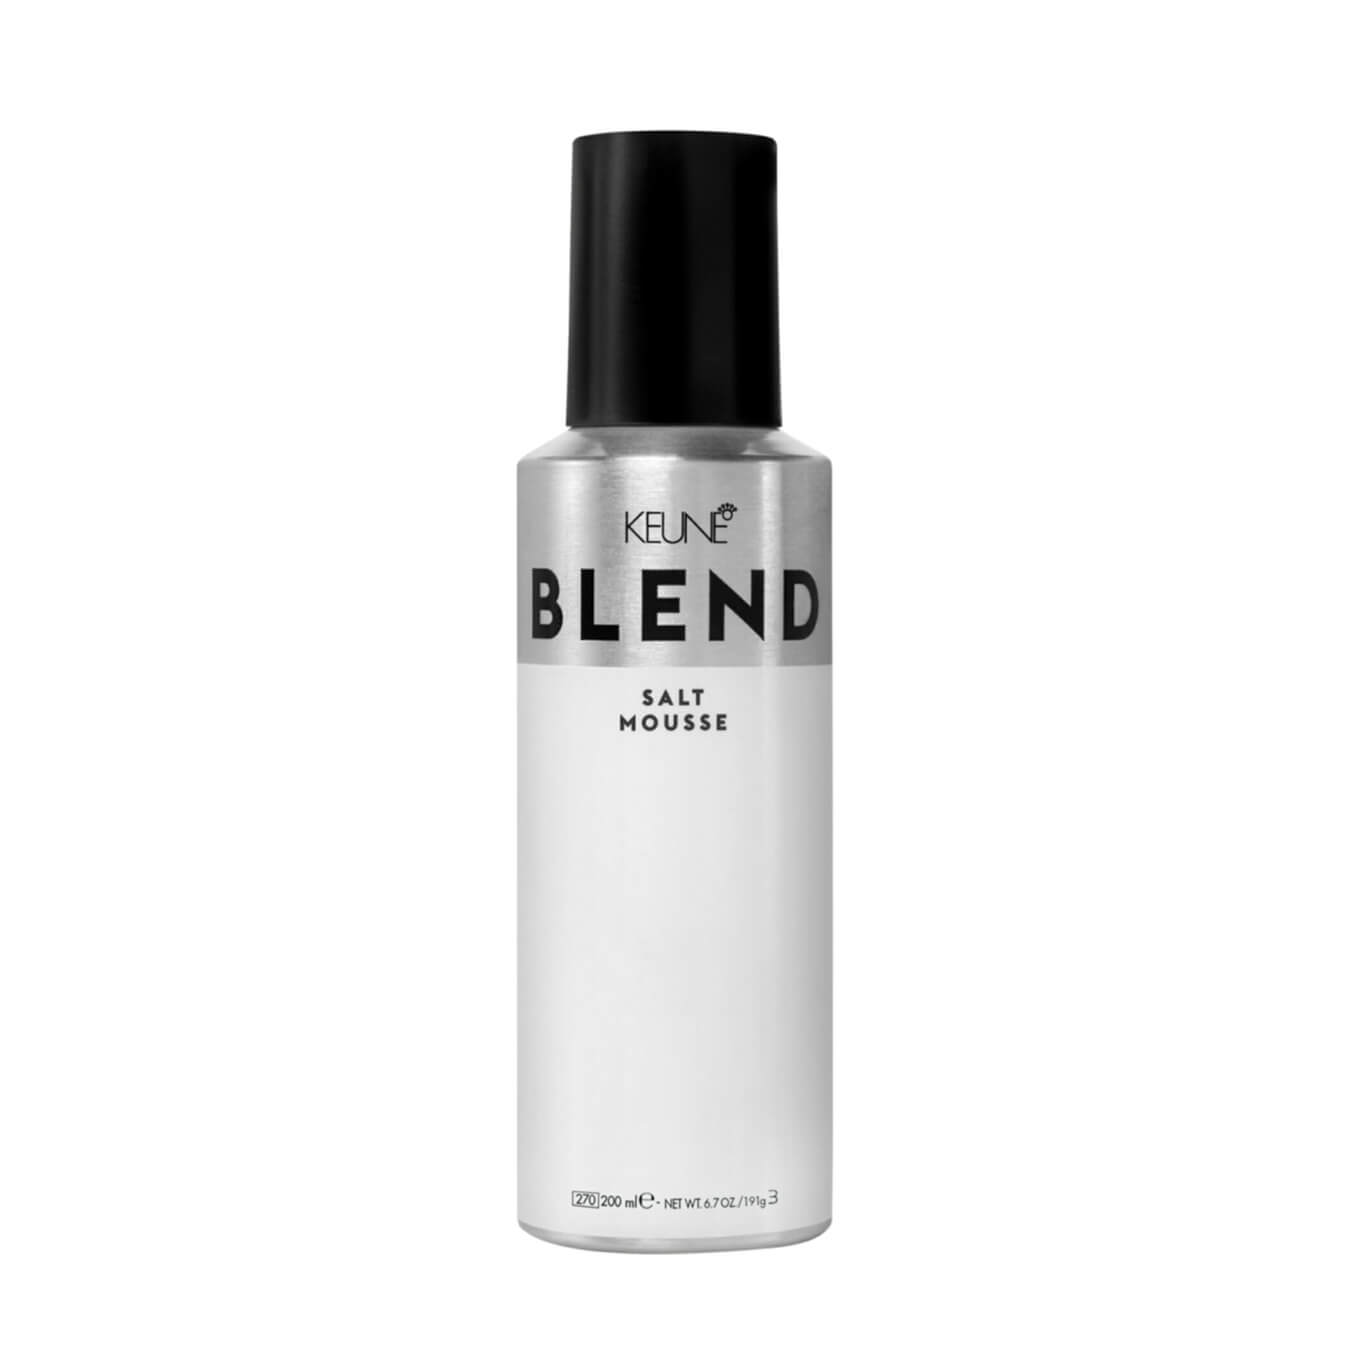 Kauf Keune Blend Salt Mousse 200ml